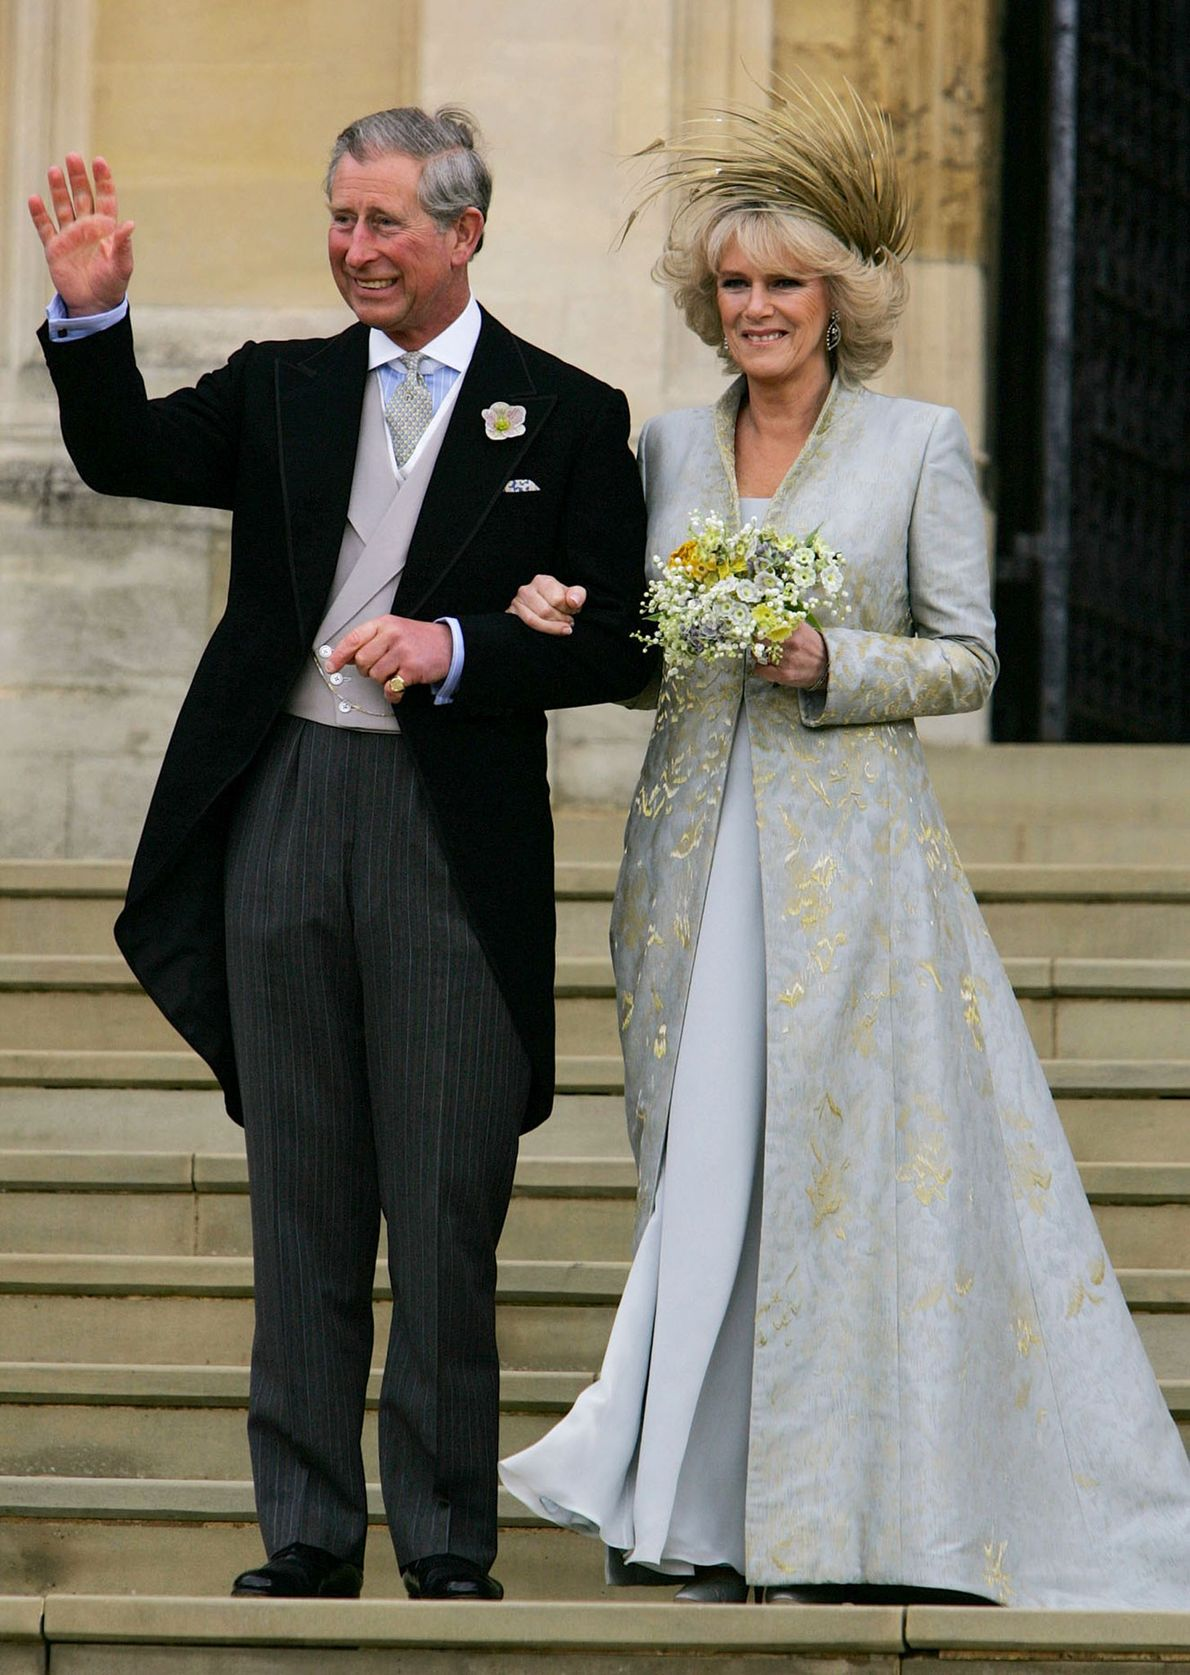 Prince Charles waves with the Duchess of Cornwall, formerly Camilla Parker Bowles, as they leave St ...